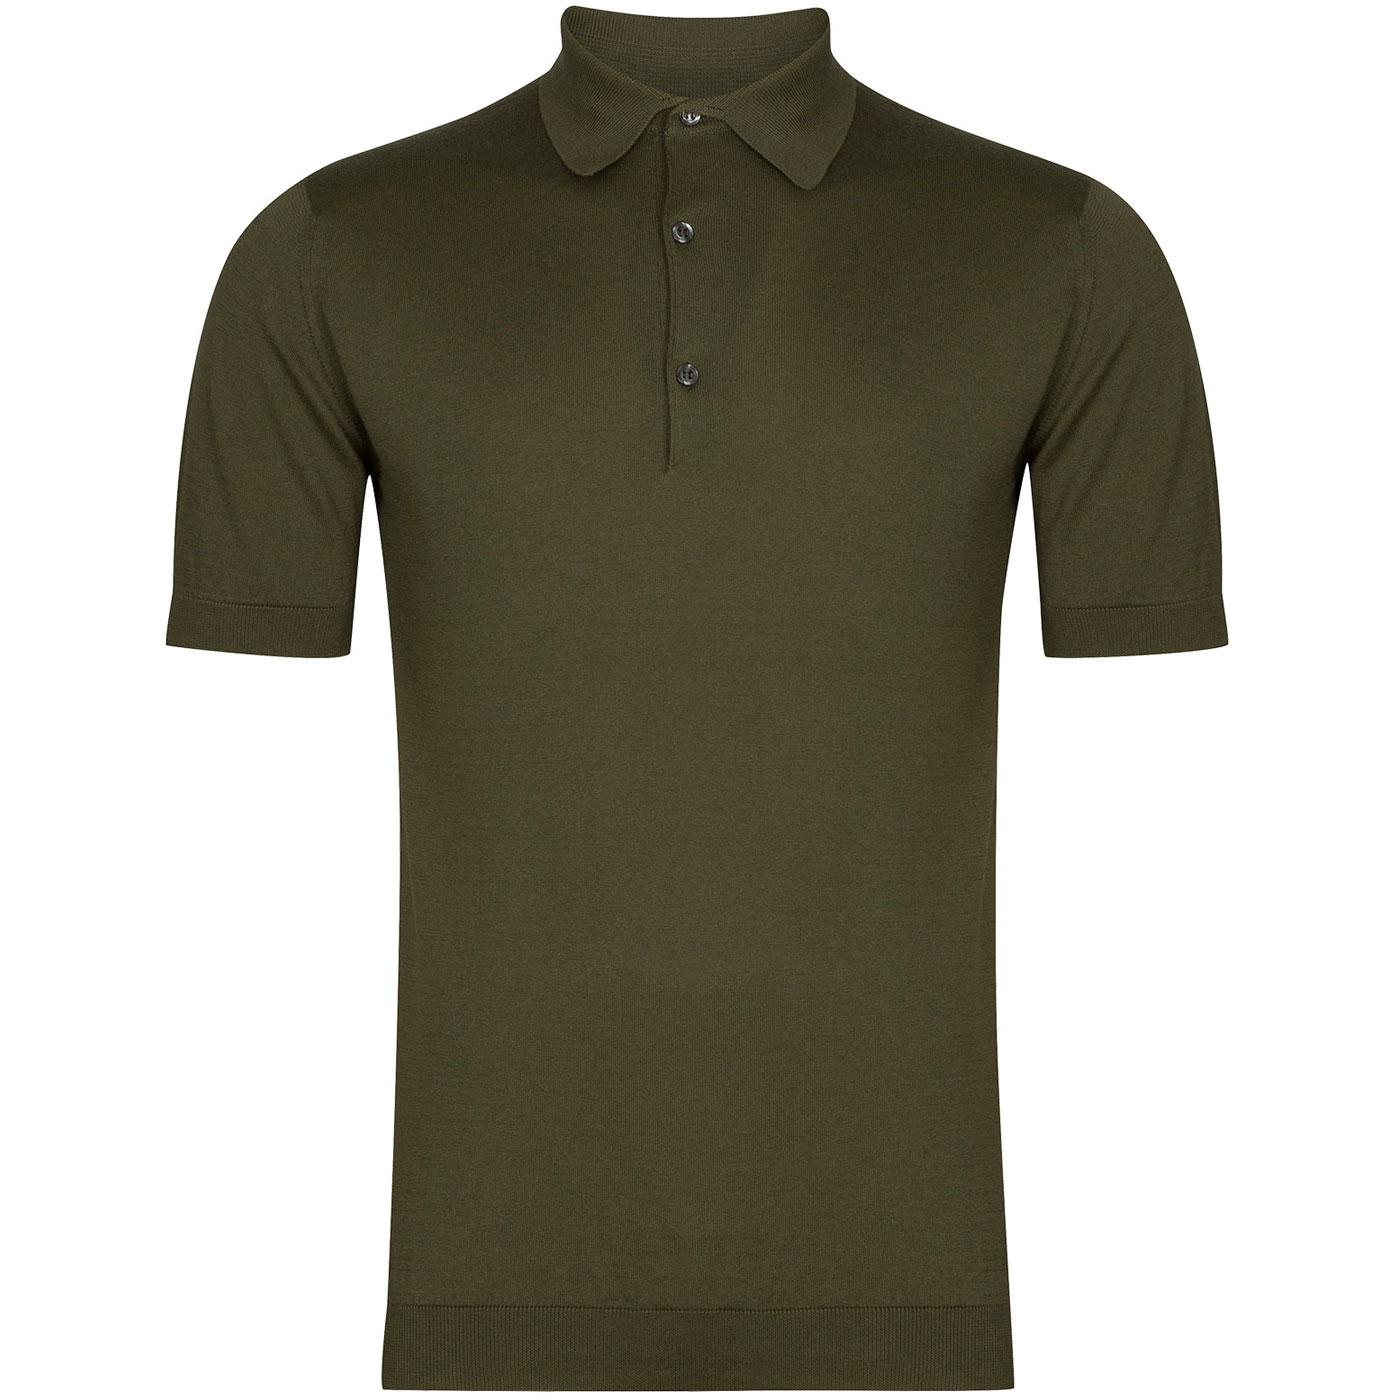 Adrian JOHN SMEDLEY Made in England Polo Top (SG)